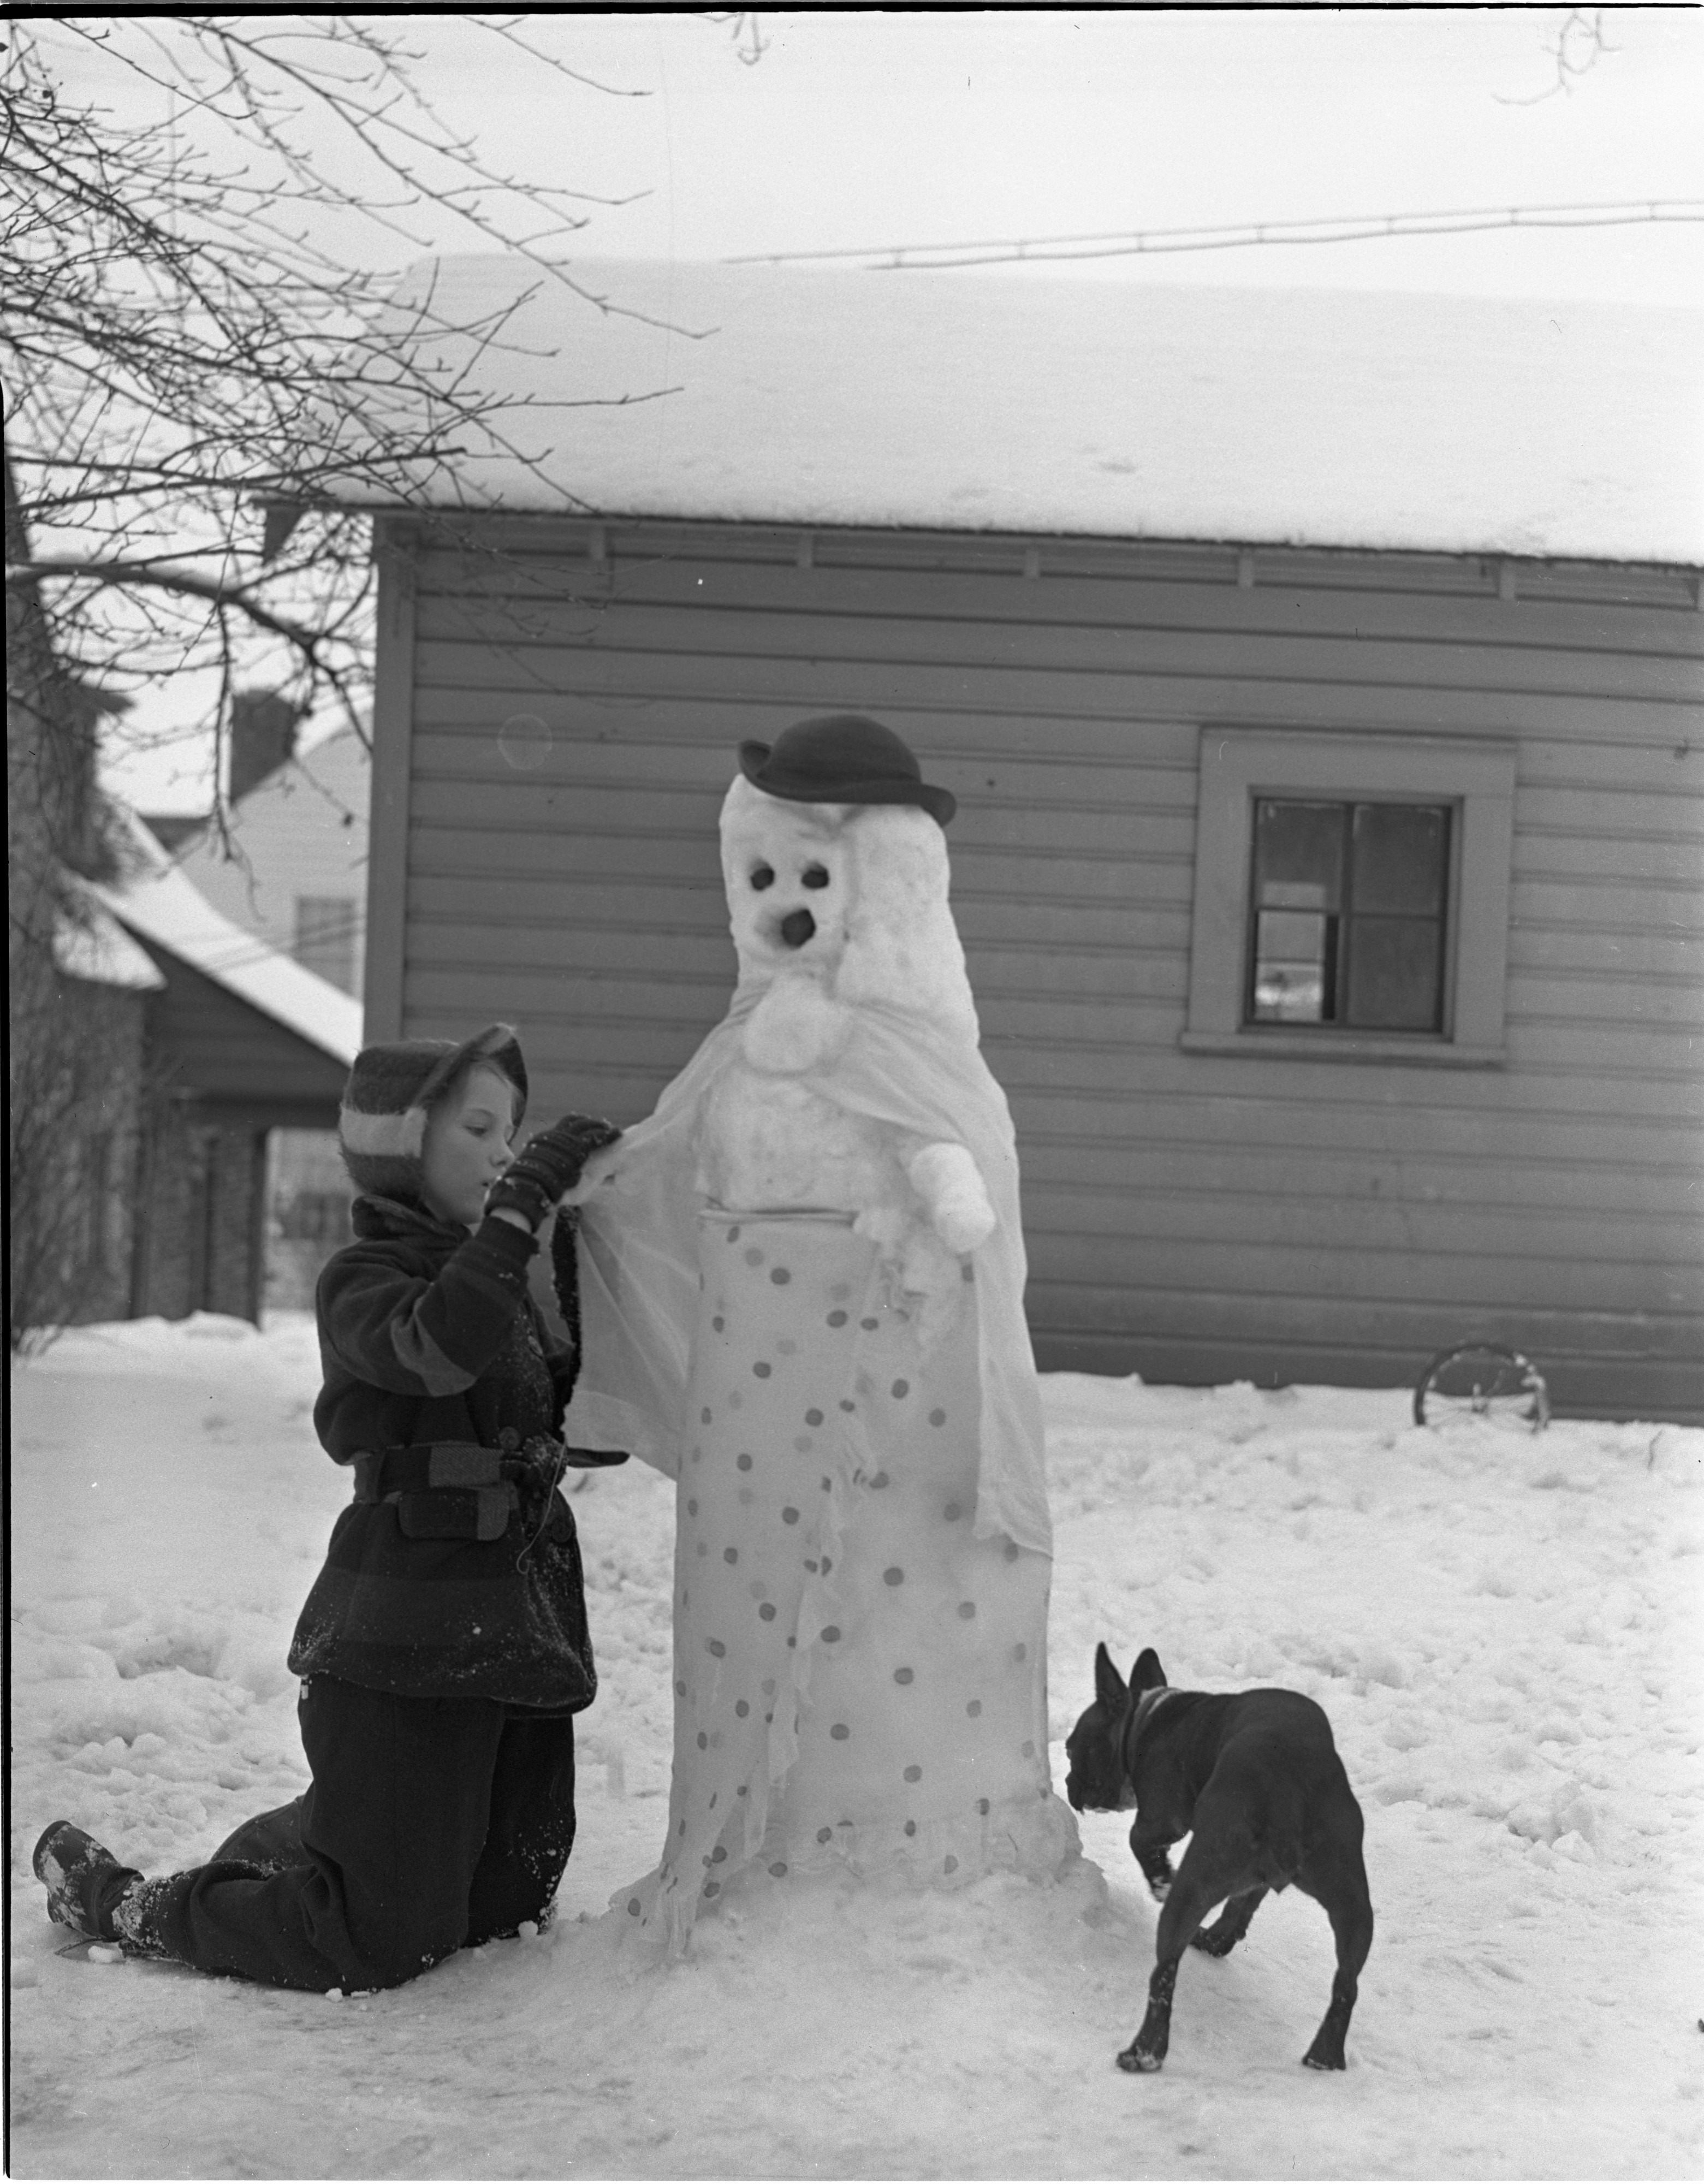 Dorothy Jean Thomas Builds A Snow Lady In Her Yard, February 1940 image